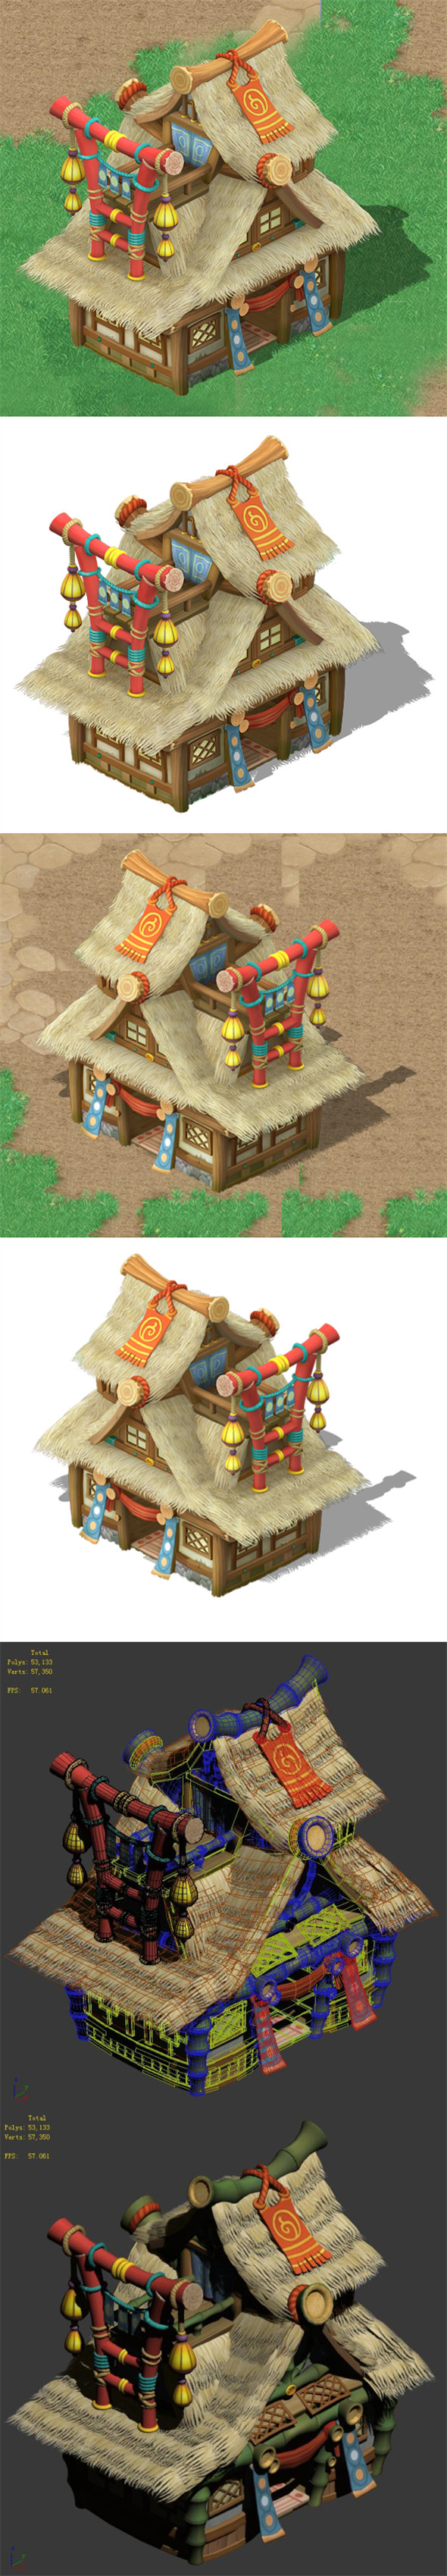 Cartoon World - House 0404 - 3DOcean Item for Sale